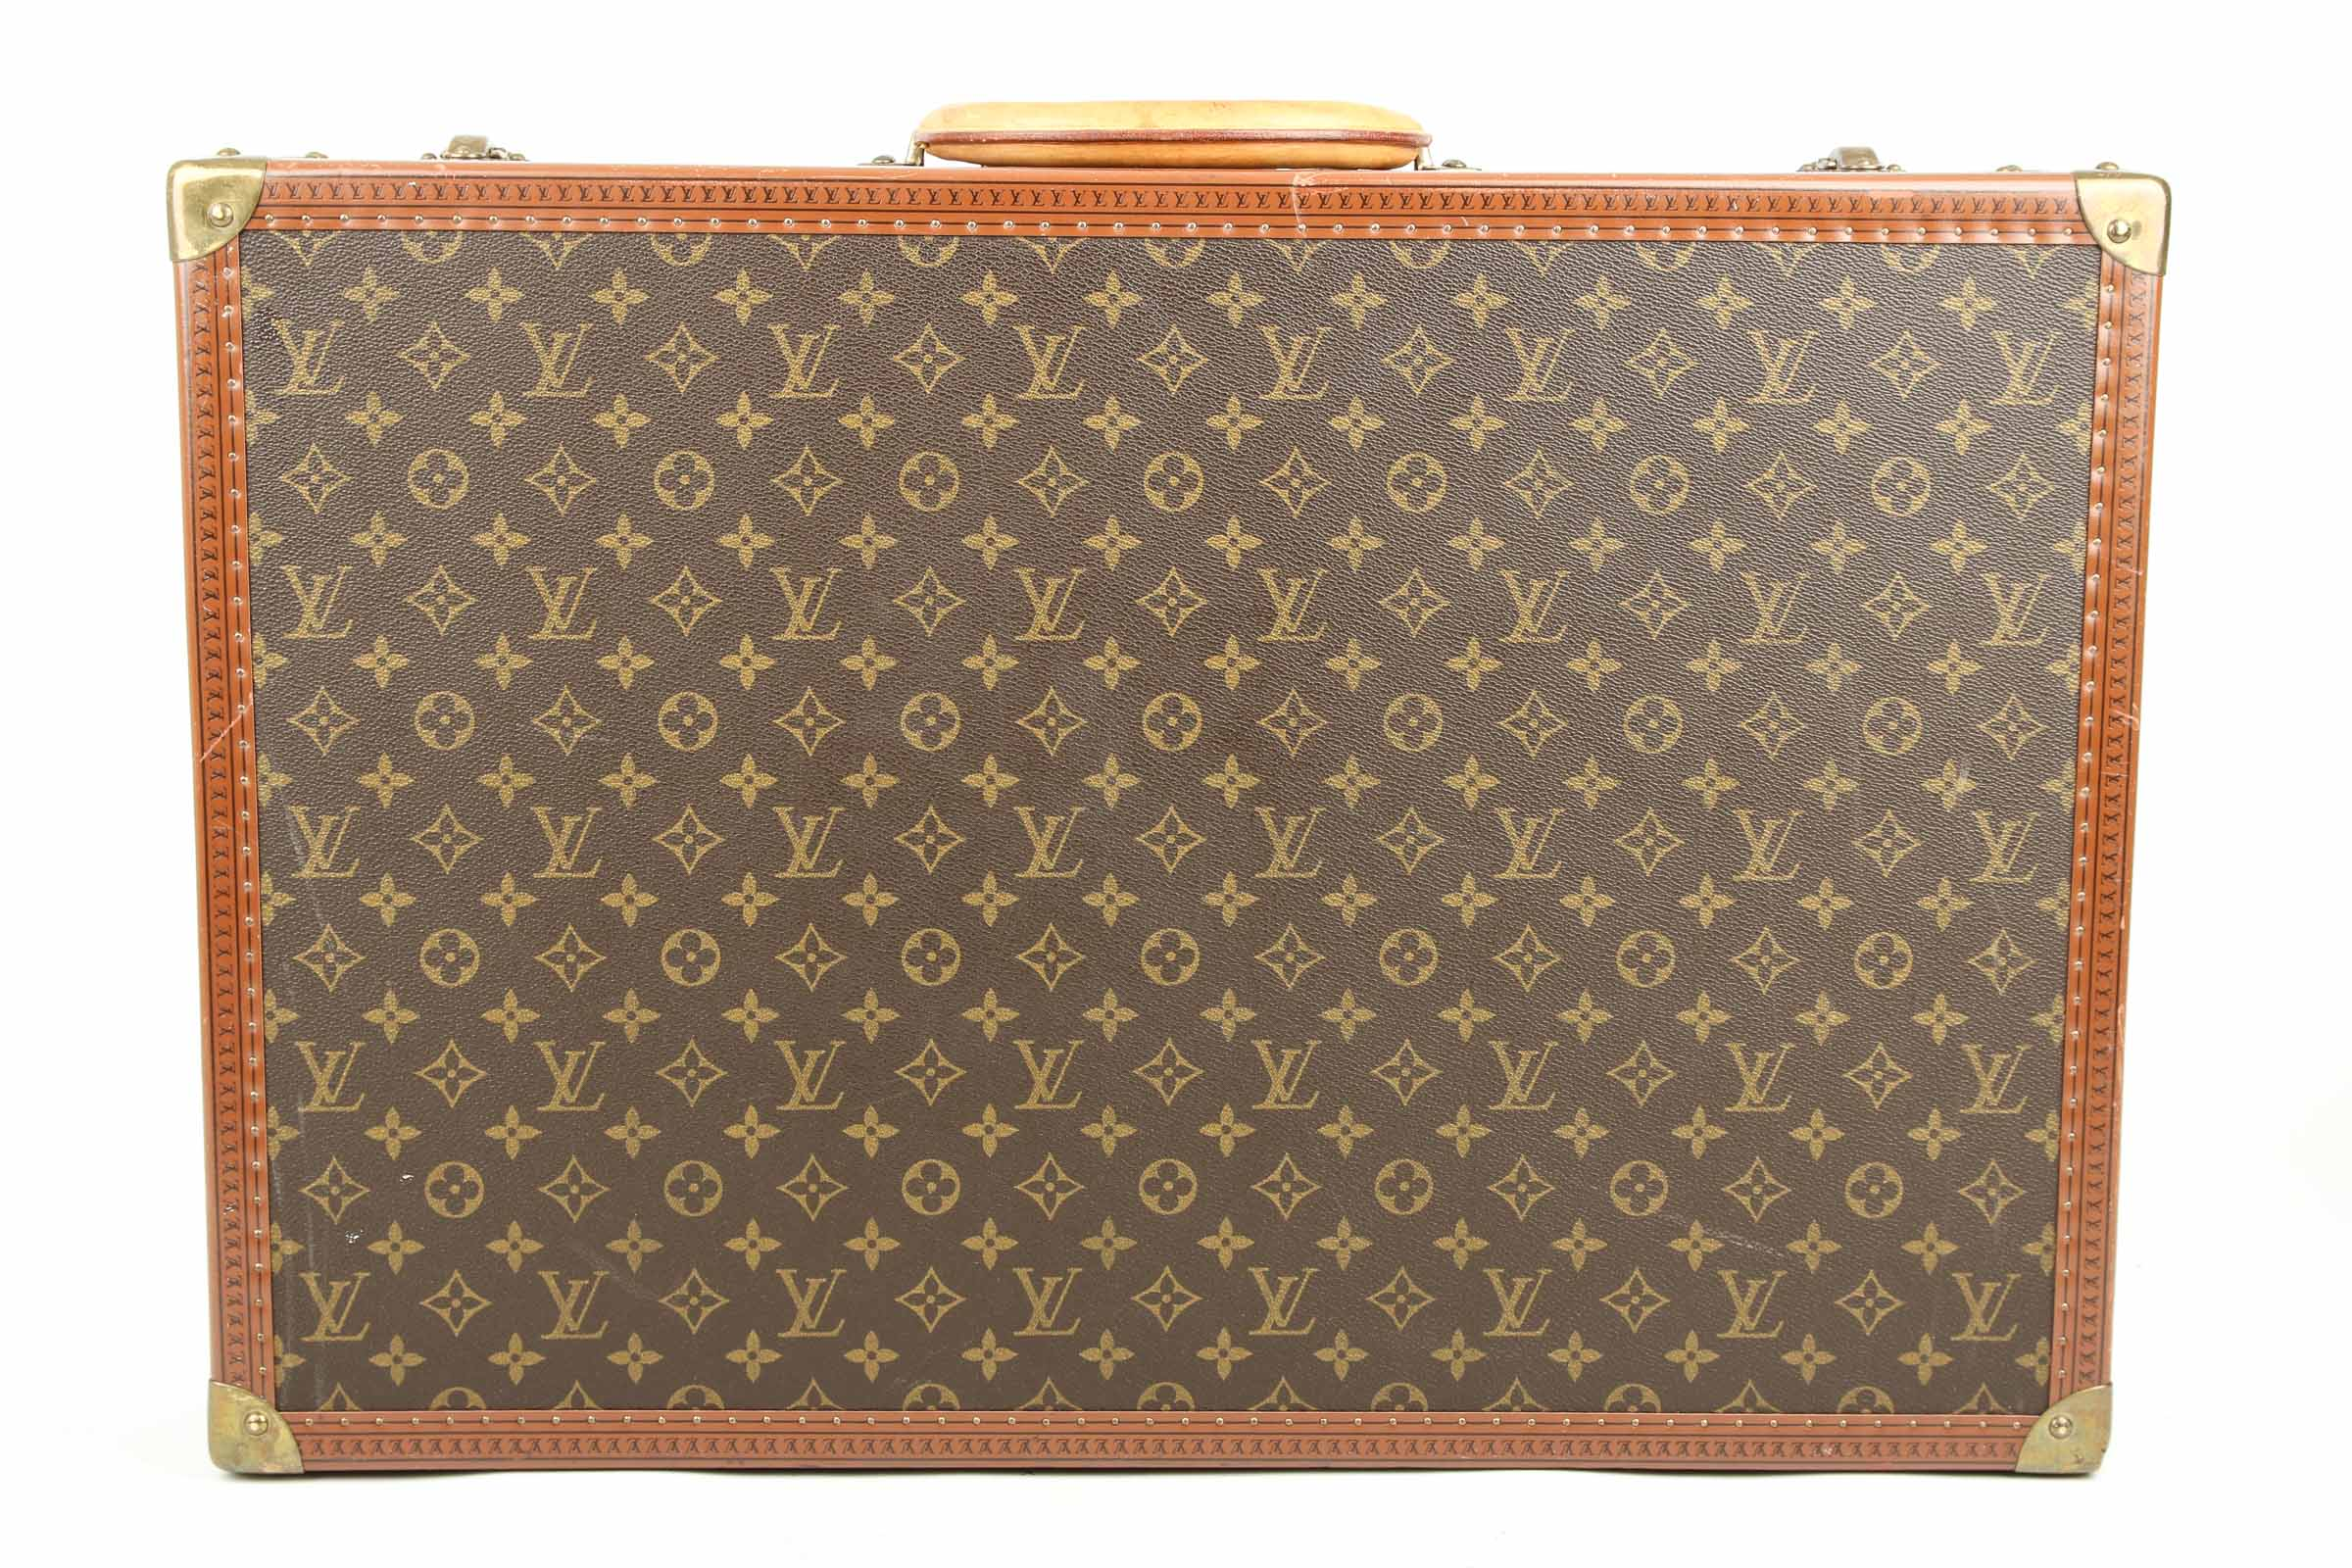 louis vuitton bisten koffer 65 monogram canvas. Black Bedroom Furniture Sets. Home Design Ideas